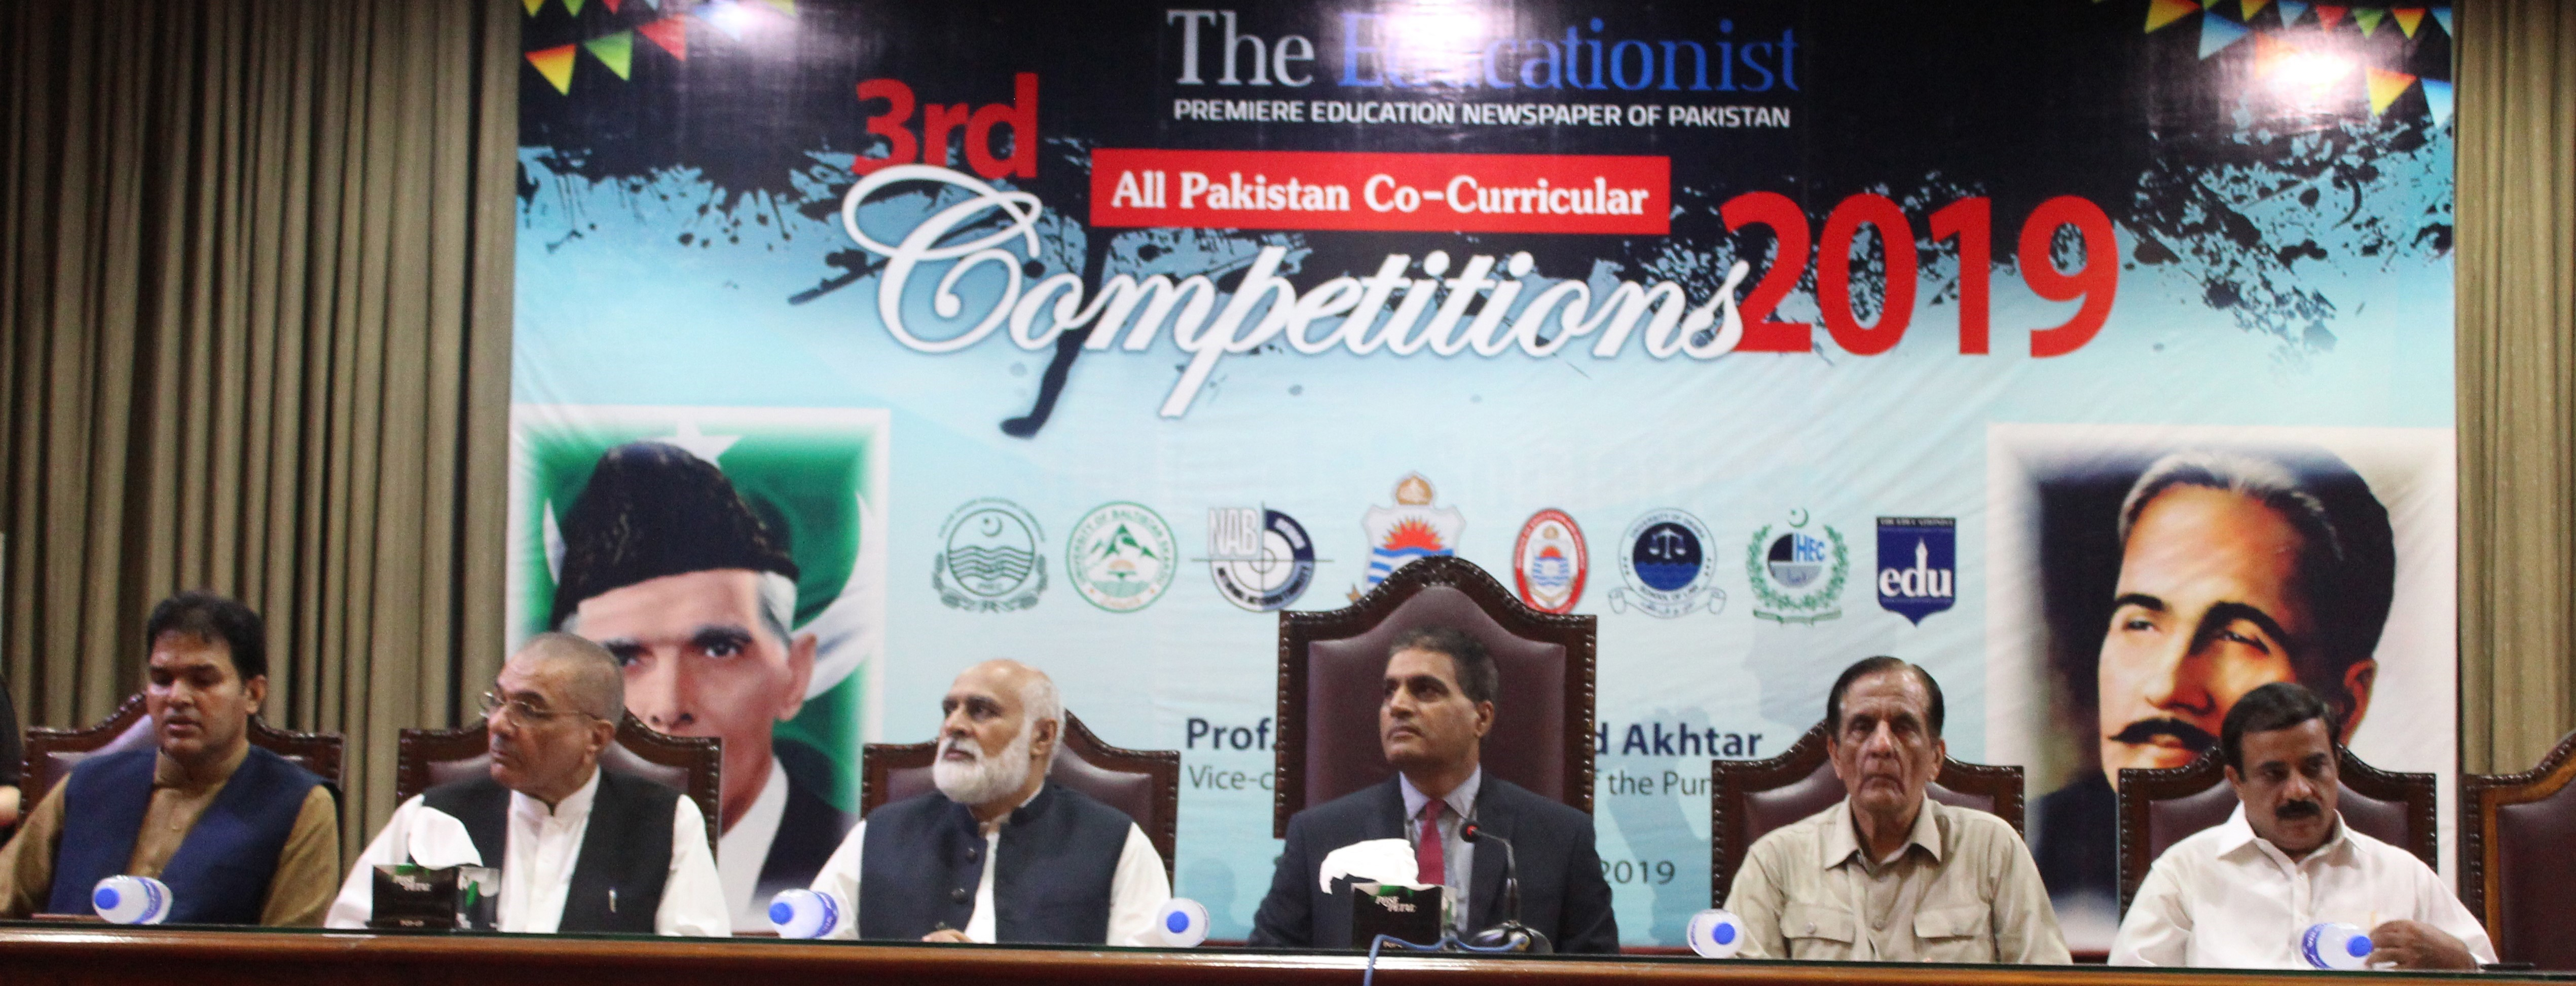 PU-Co curricular competition